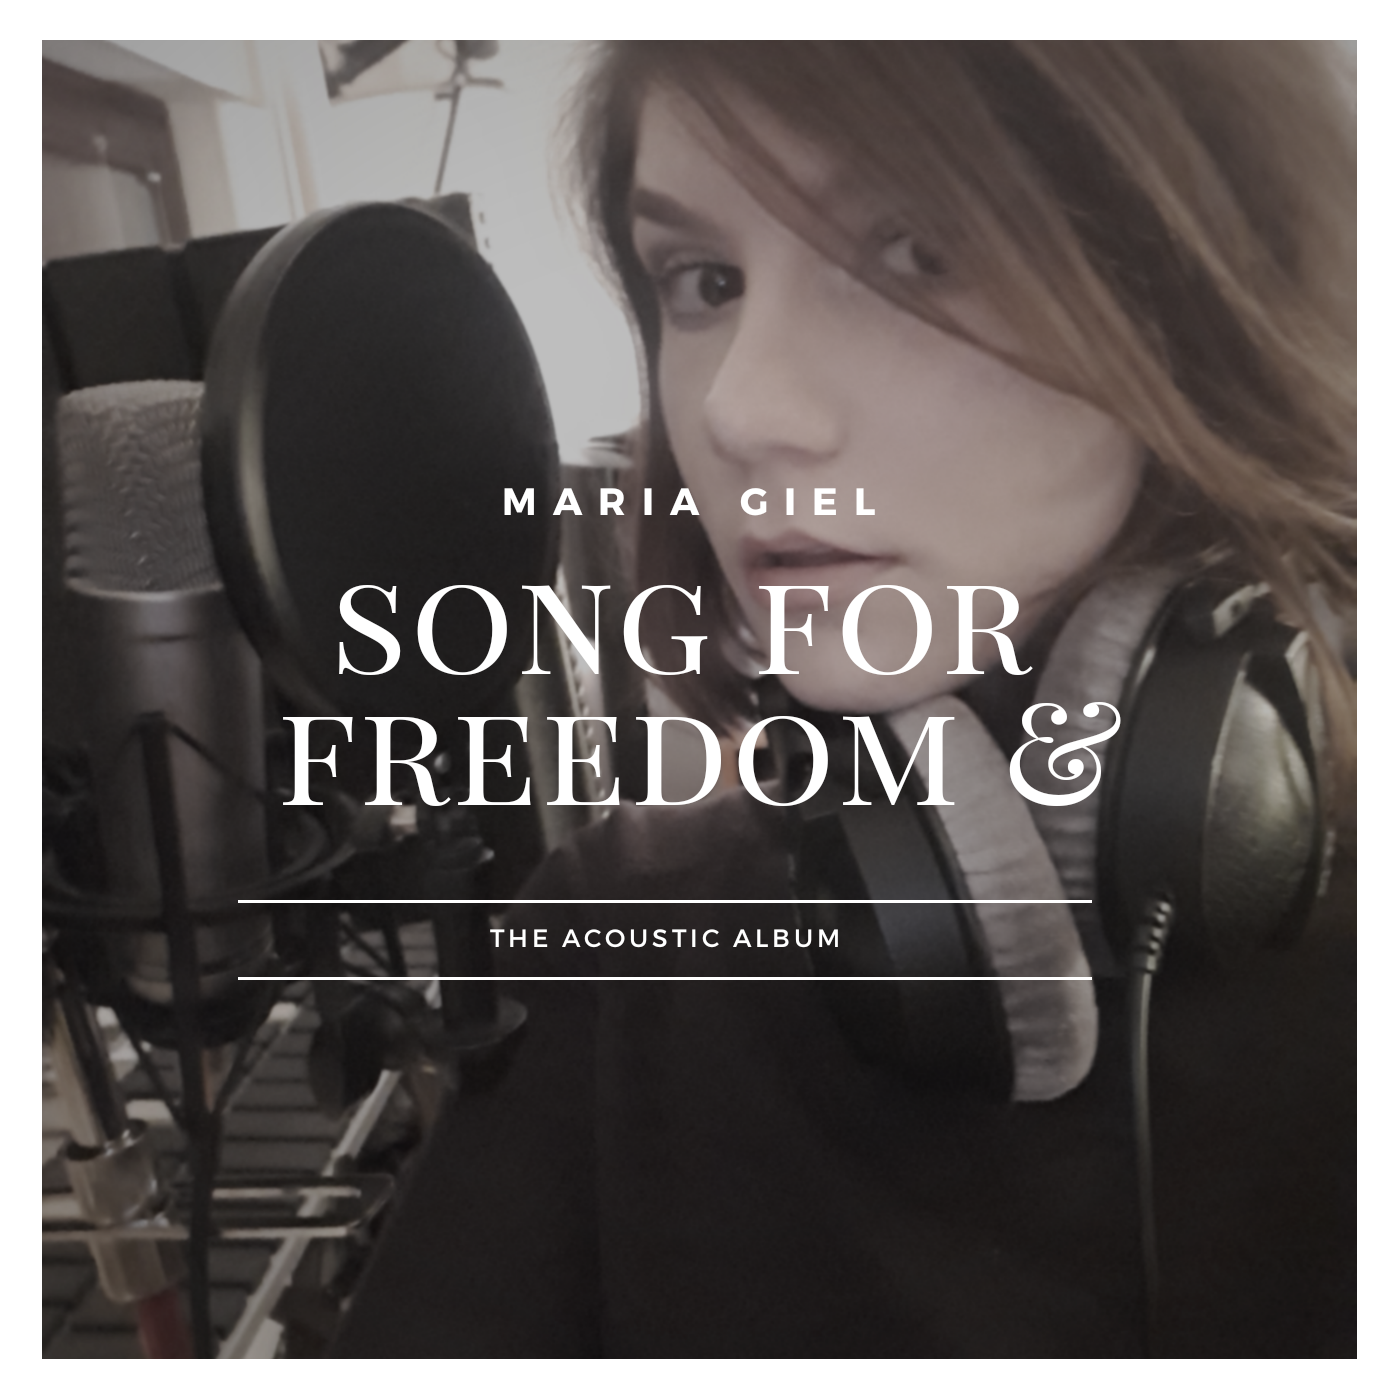 Song for freedom